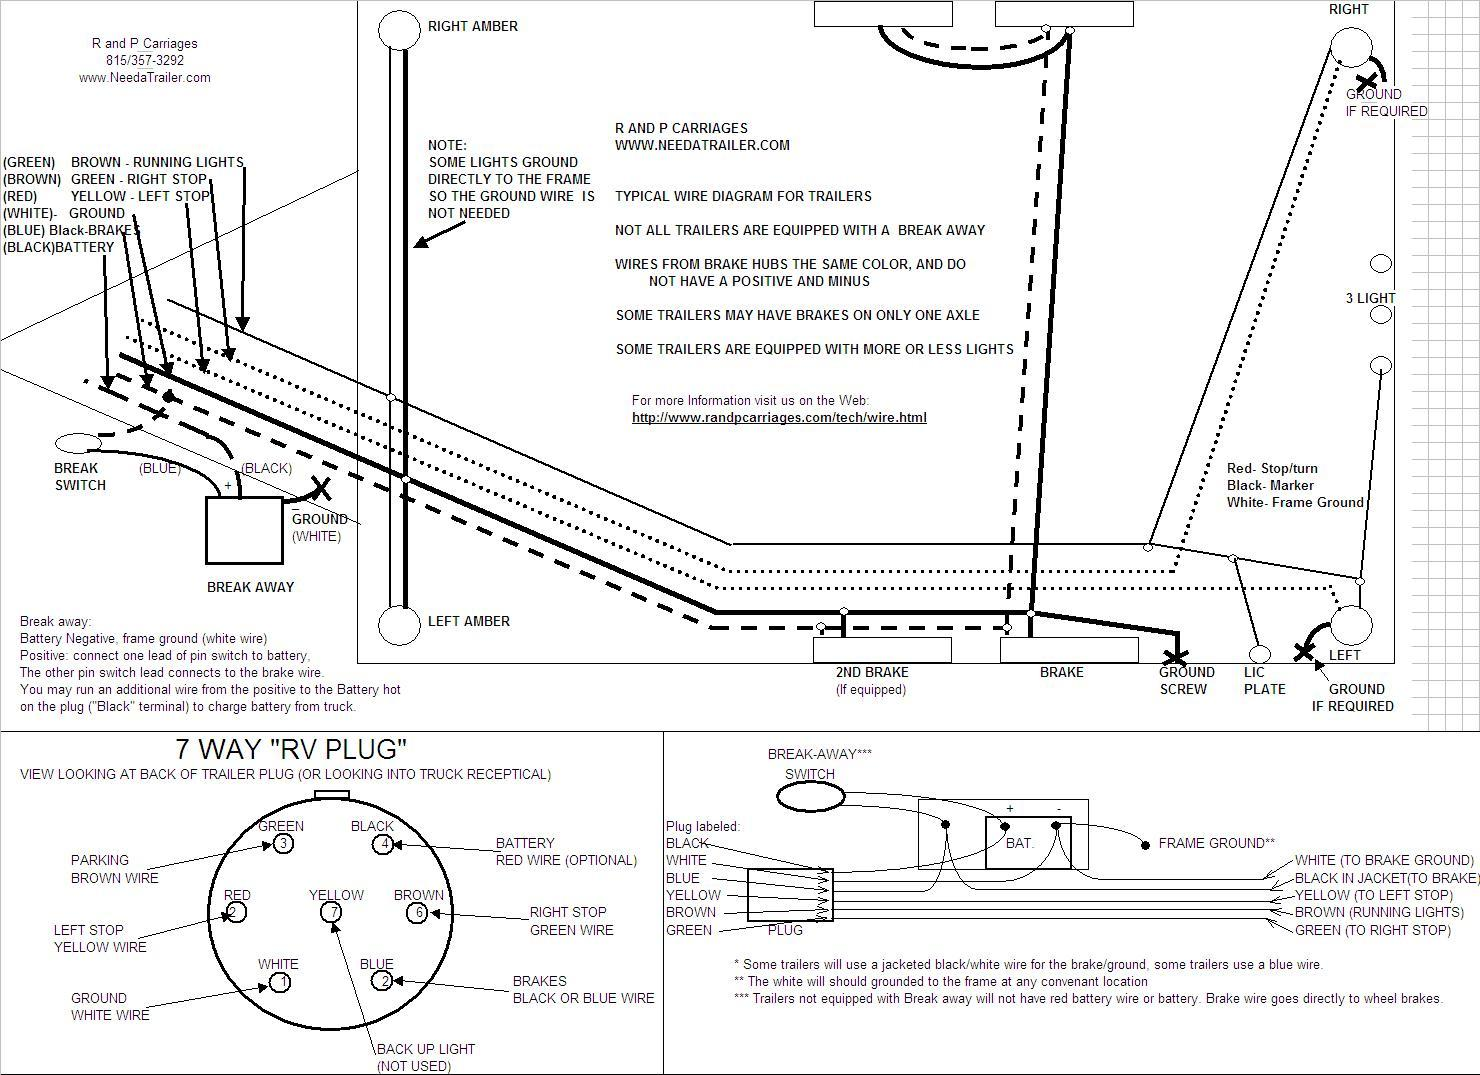 7 way wiring diagram brake controller installation instructions trailer wiring diagram 4 way at fashall.co